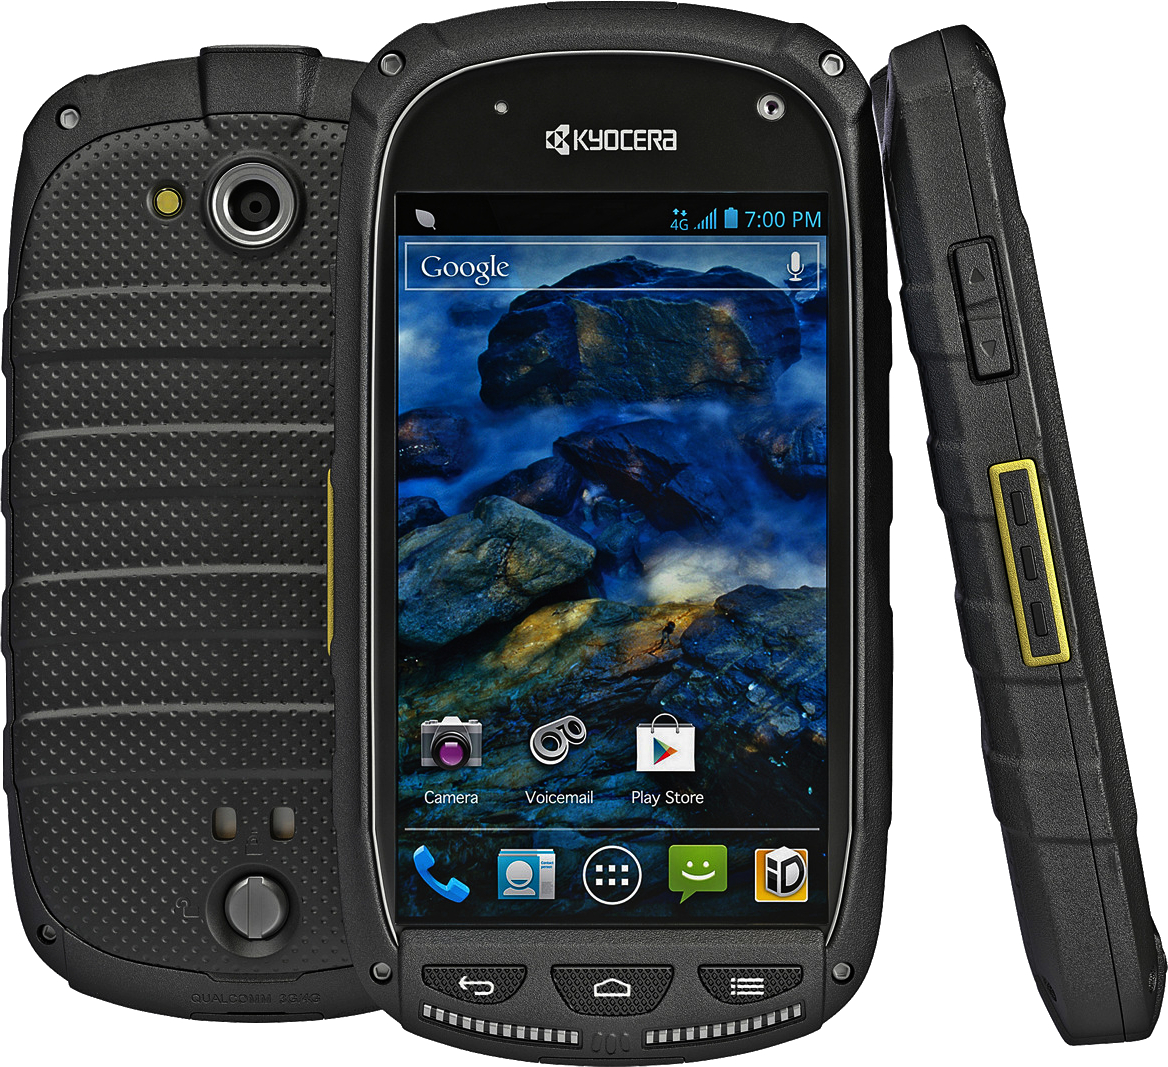 Kyocera Torque E6710 Rugged Android Smartphone For Sprint